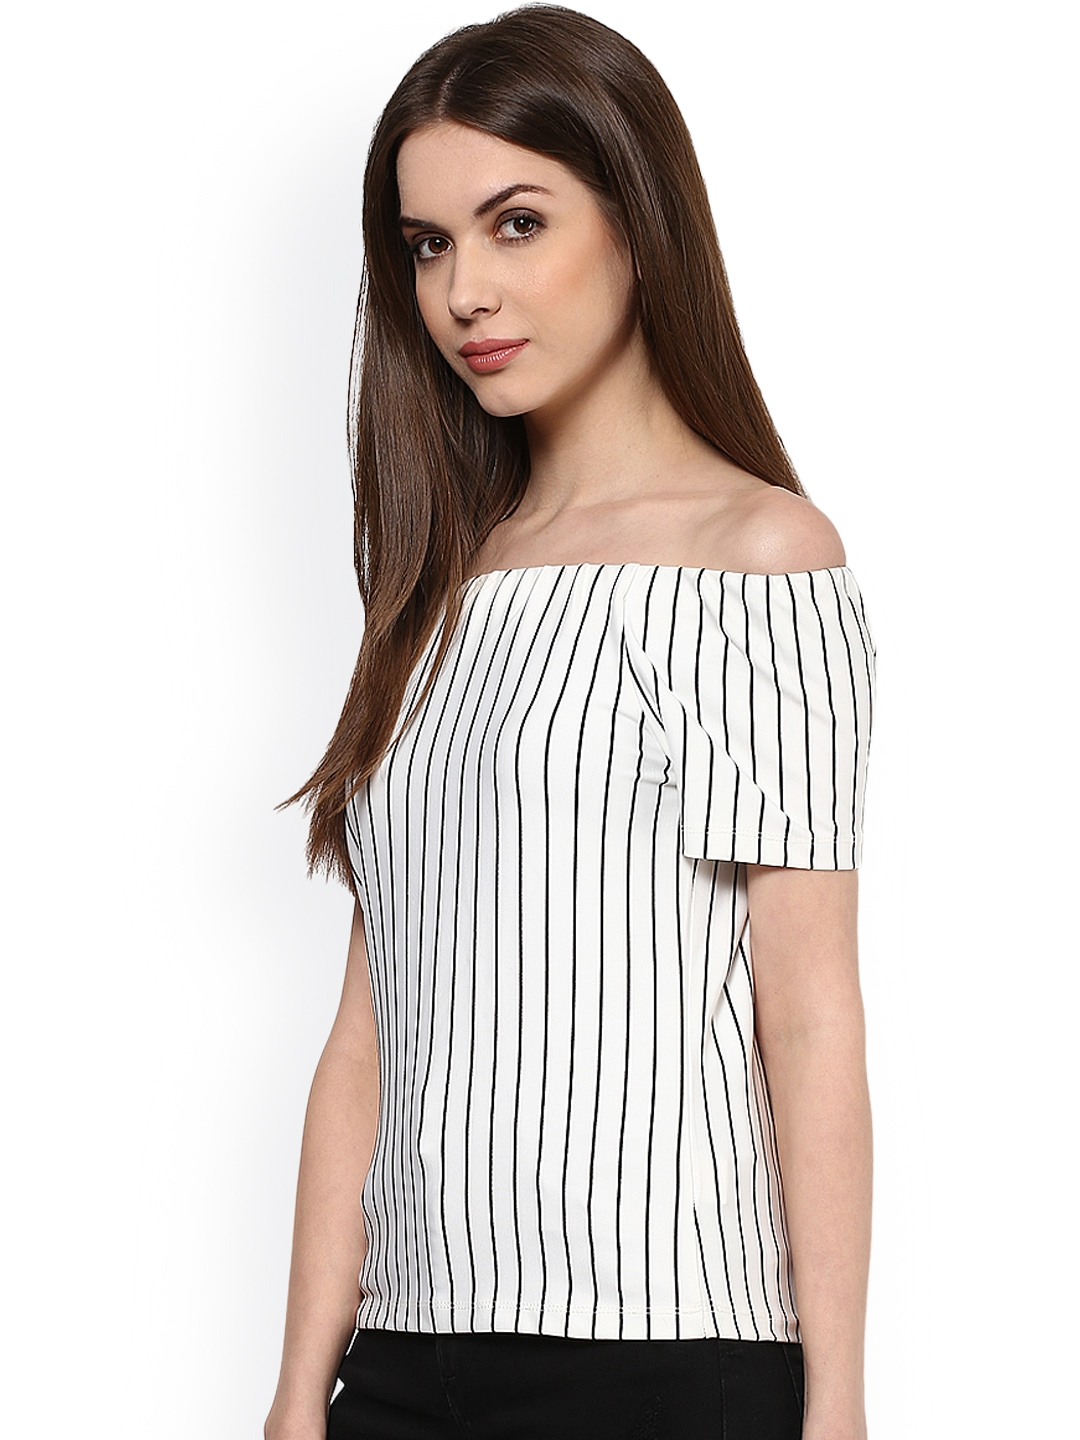 ce891099c31949 Buy Harpa White   Black Striped Off Shoulder Top - Tops for Women ...